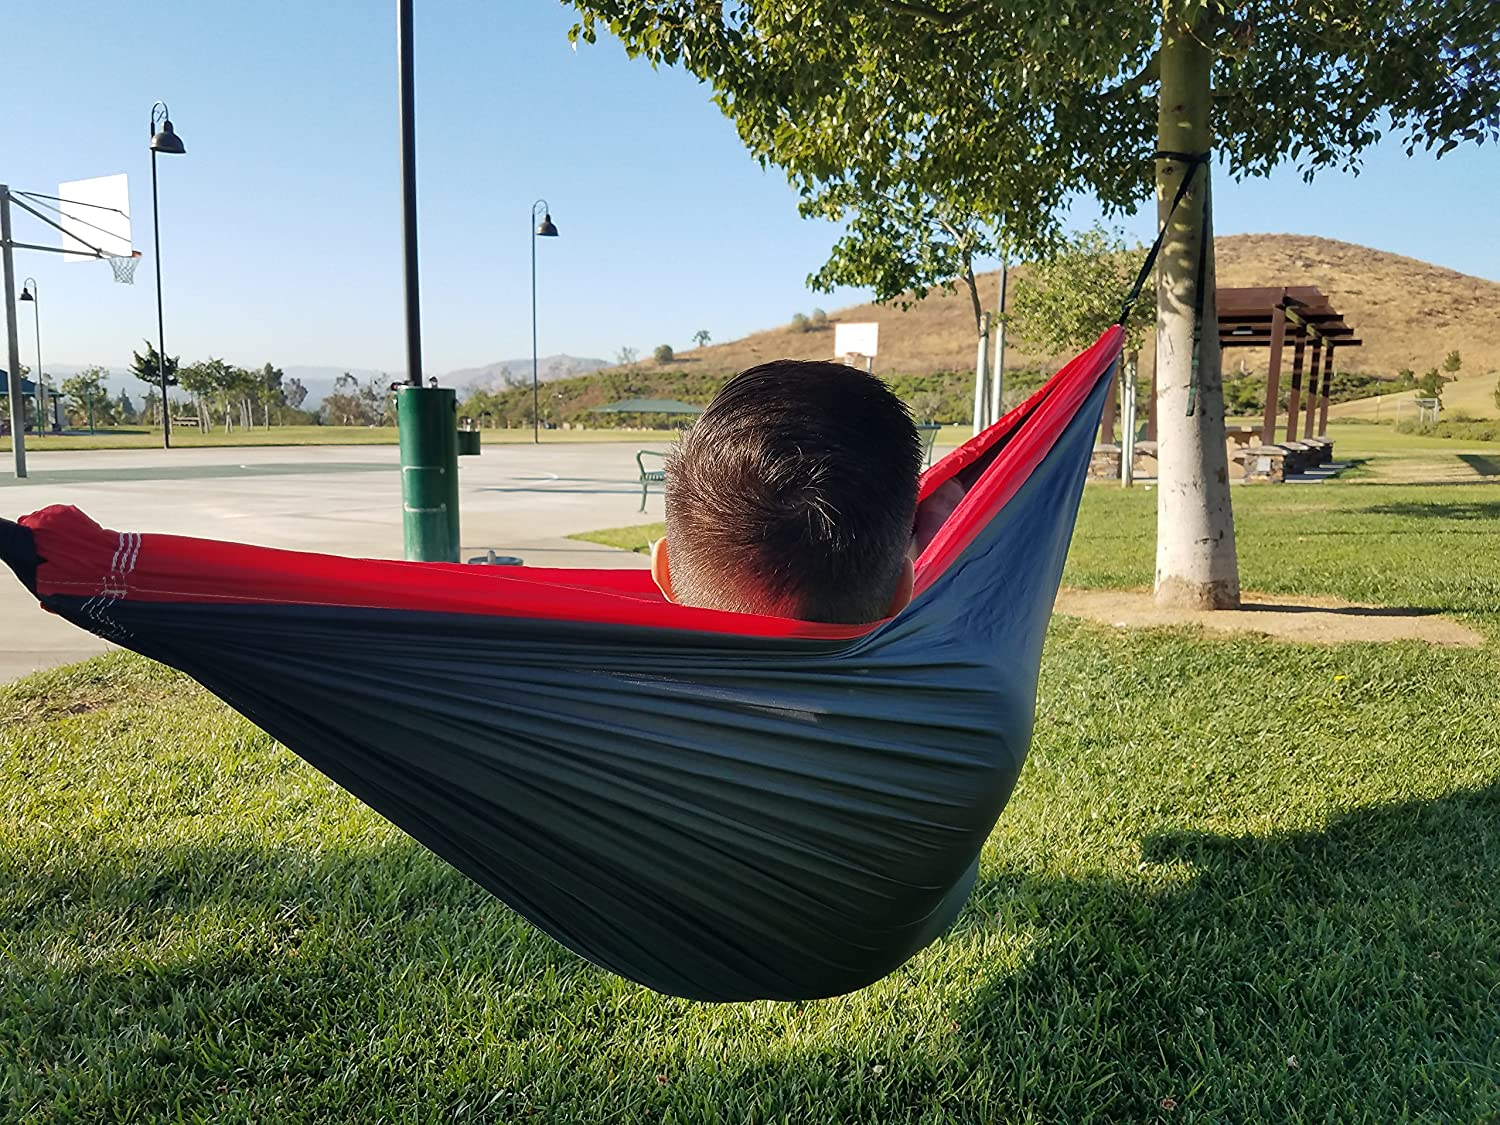 Elementa World Lightweight Double Camping Hammock – Aria 2 Hammock Perfect for Camping, Backpacking, Beach, Park, Balcony, Backyard, and More Tree Straps Included